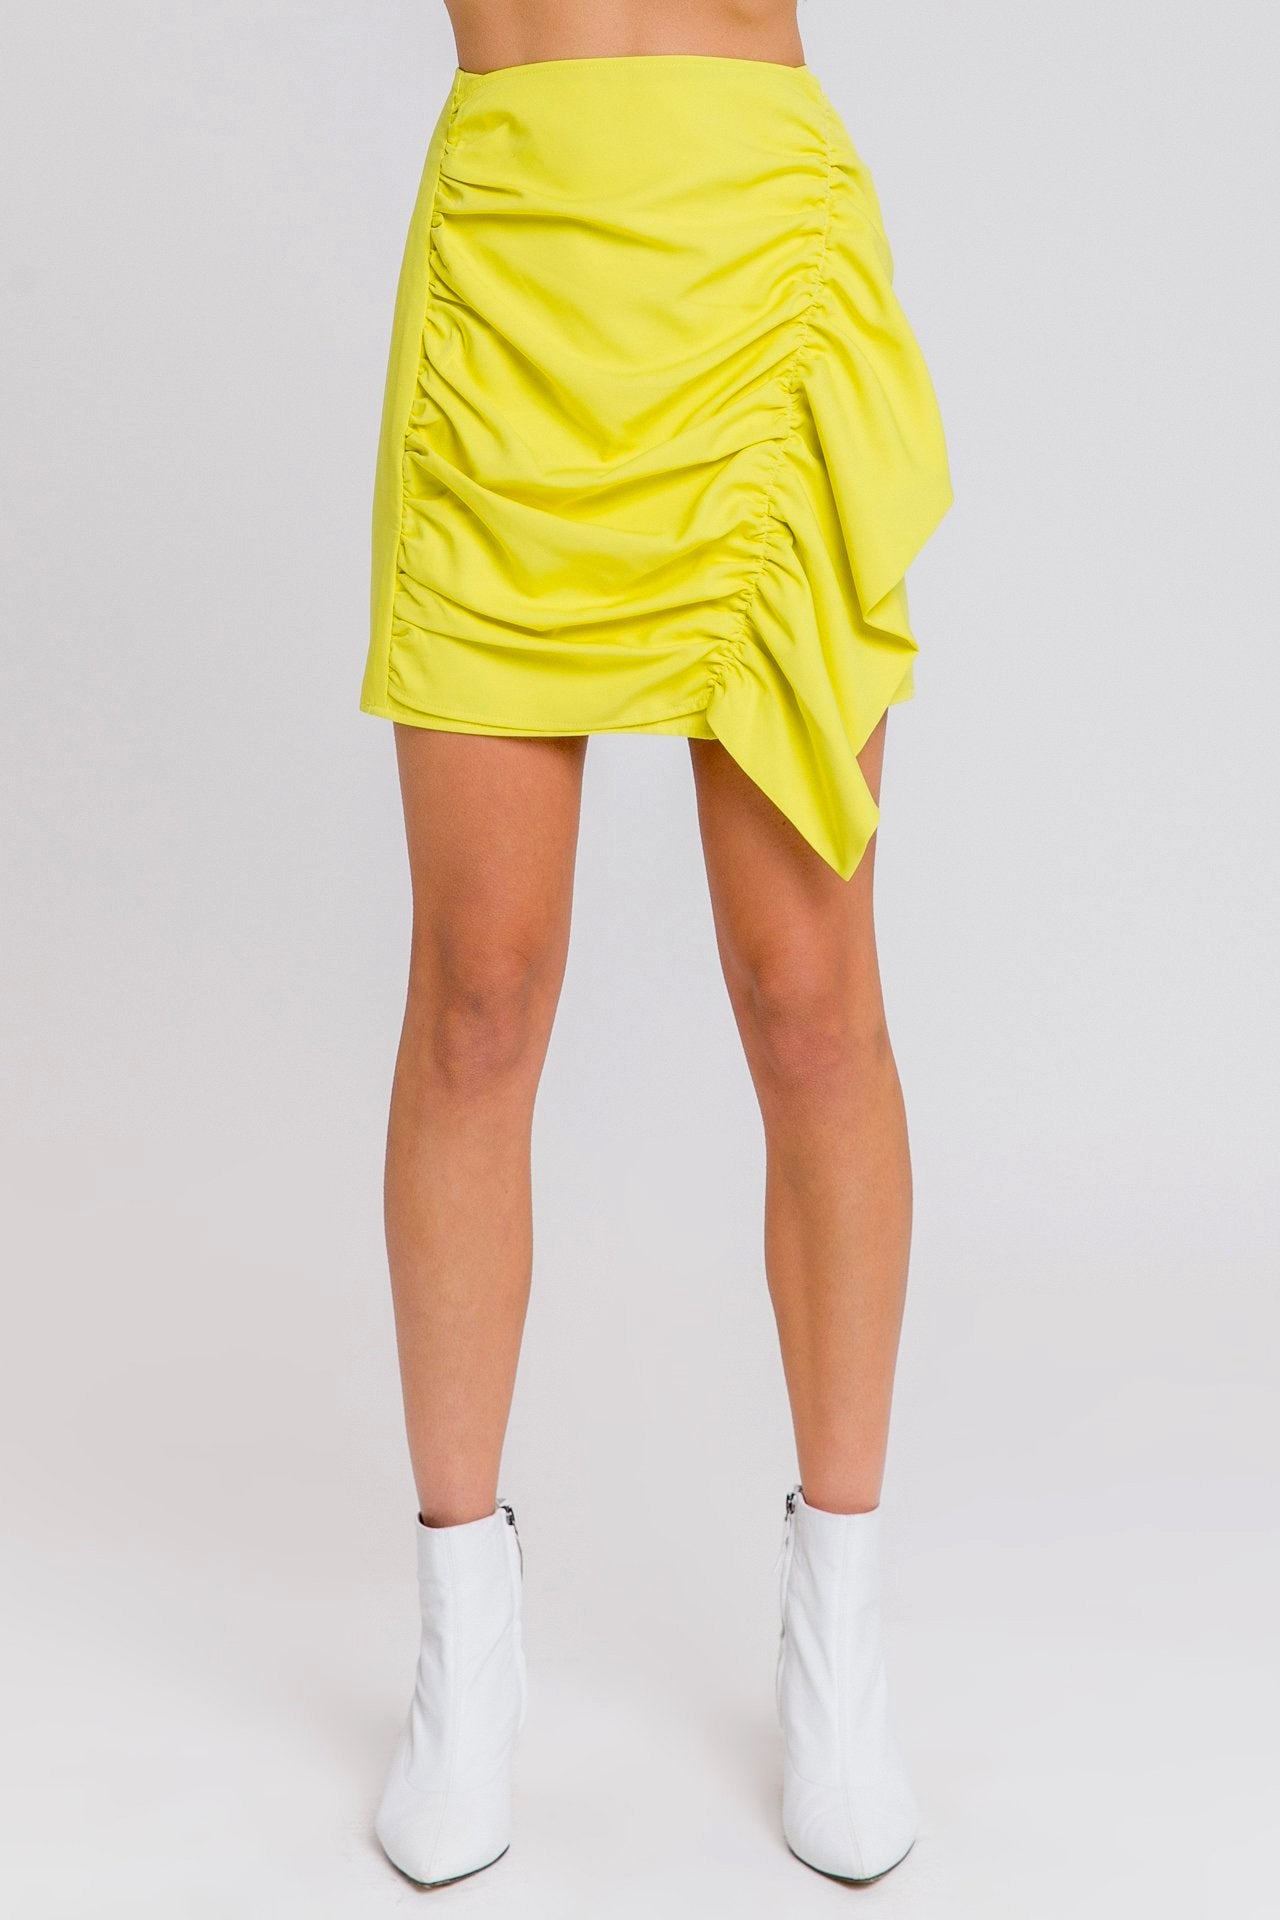 Highlighter Yellow Ruffled Mini Skirt - Coveted Style